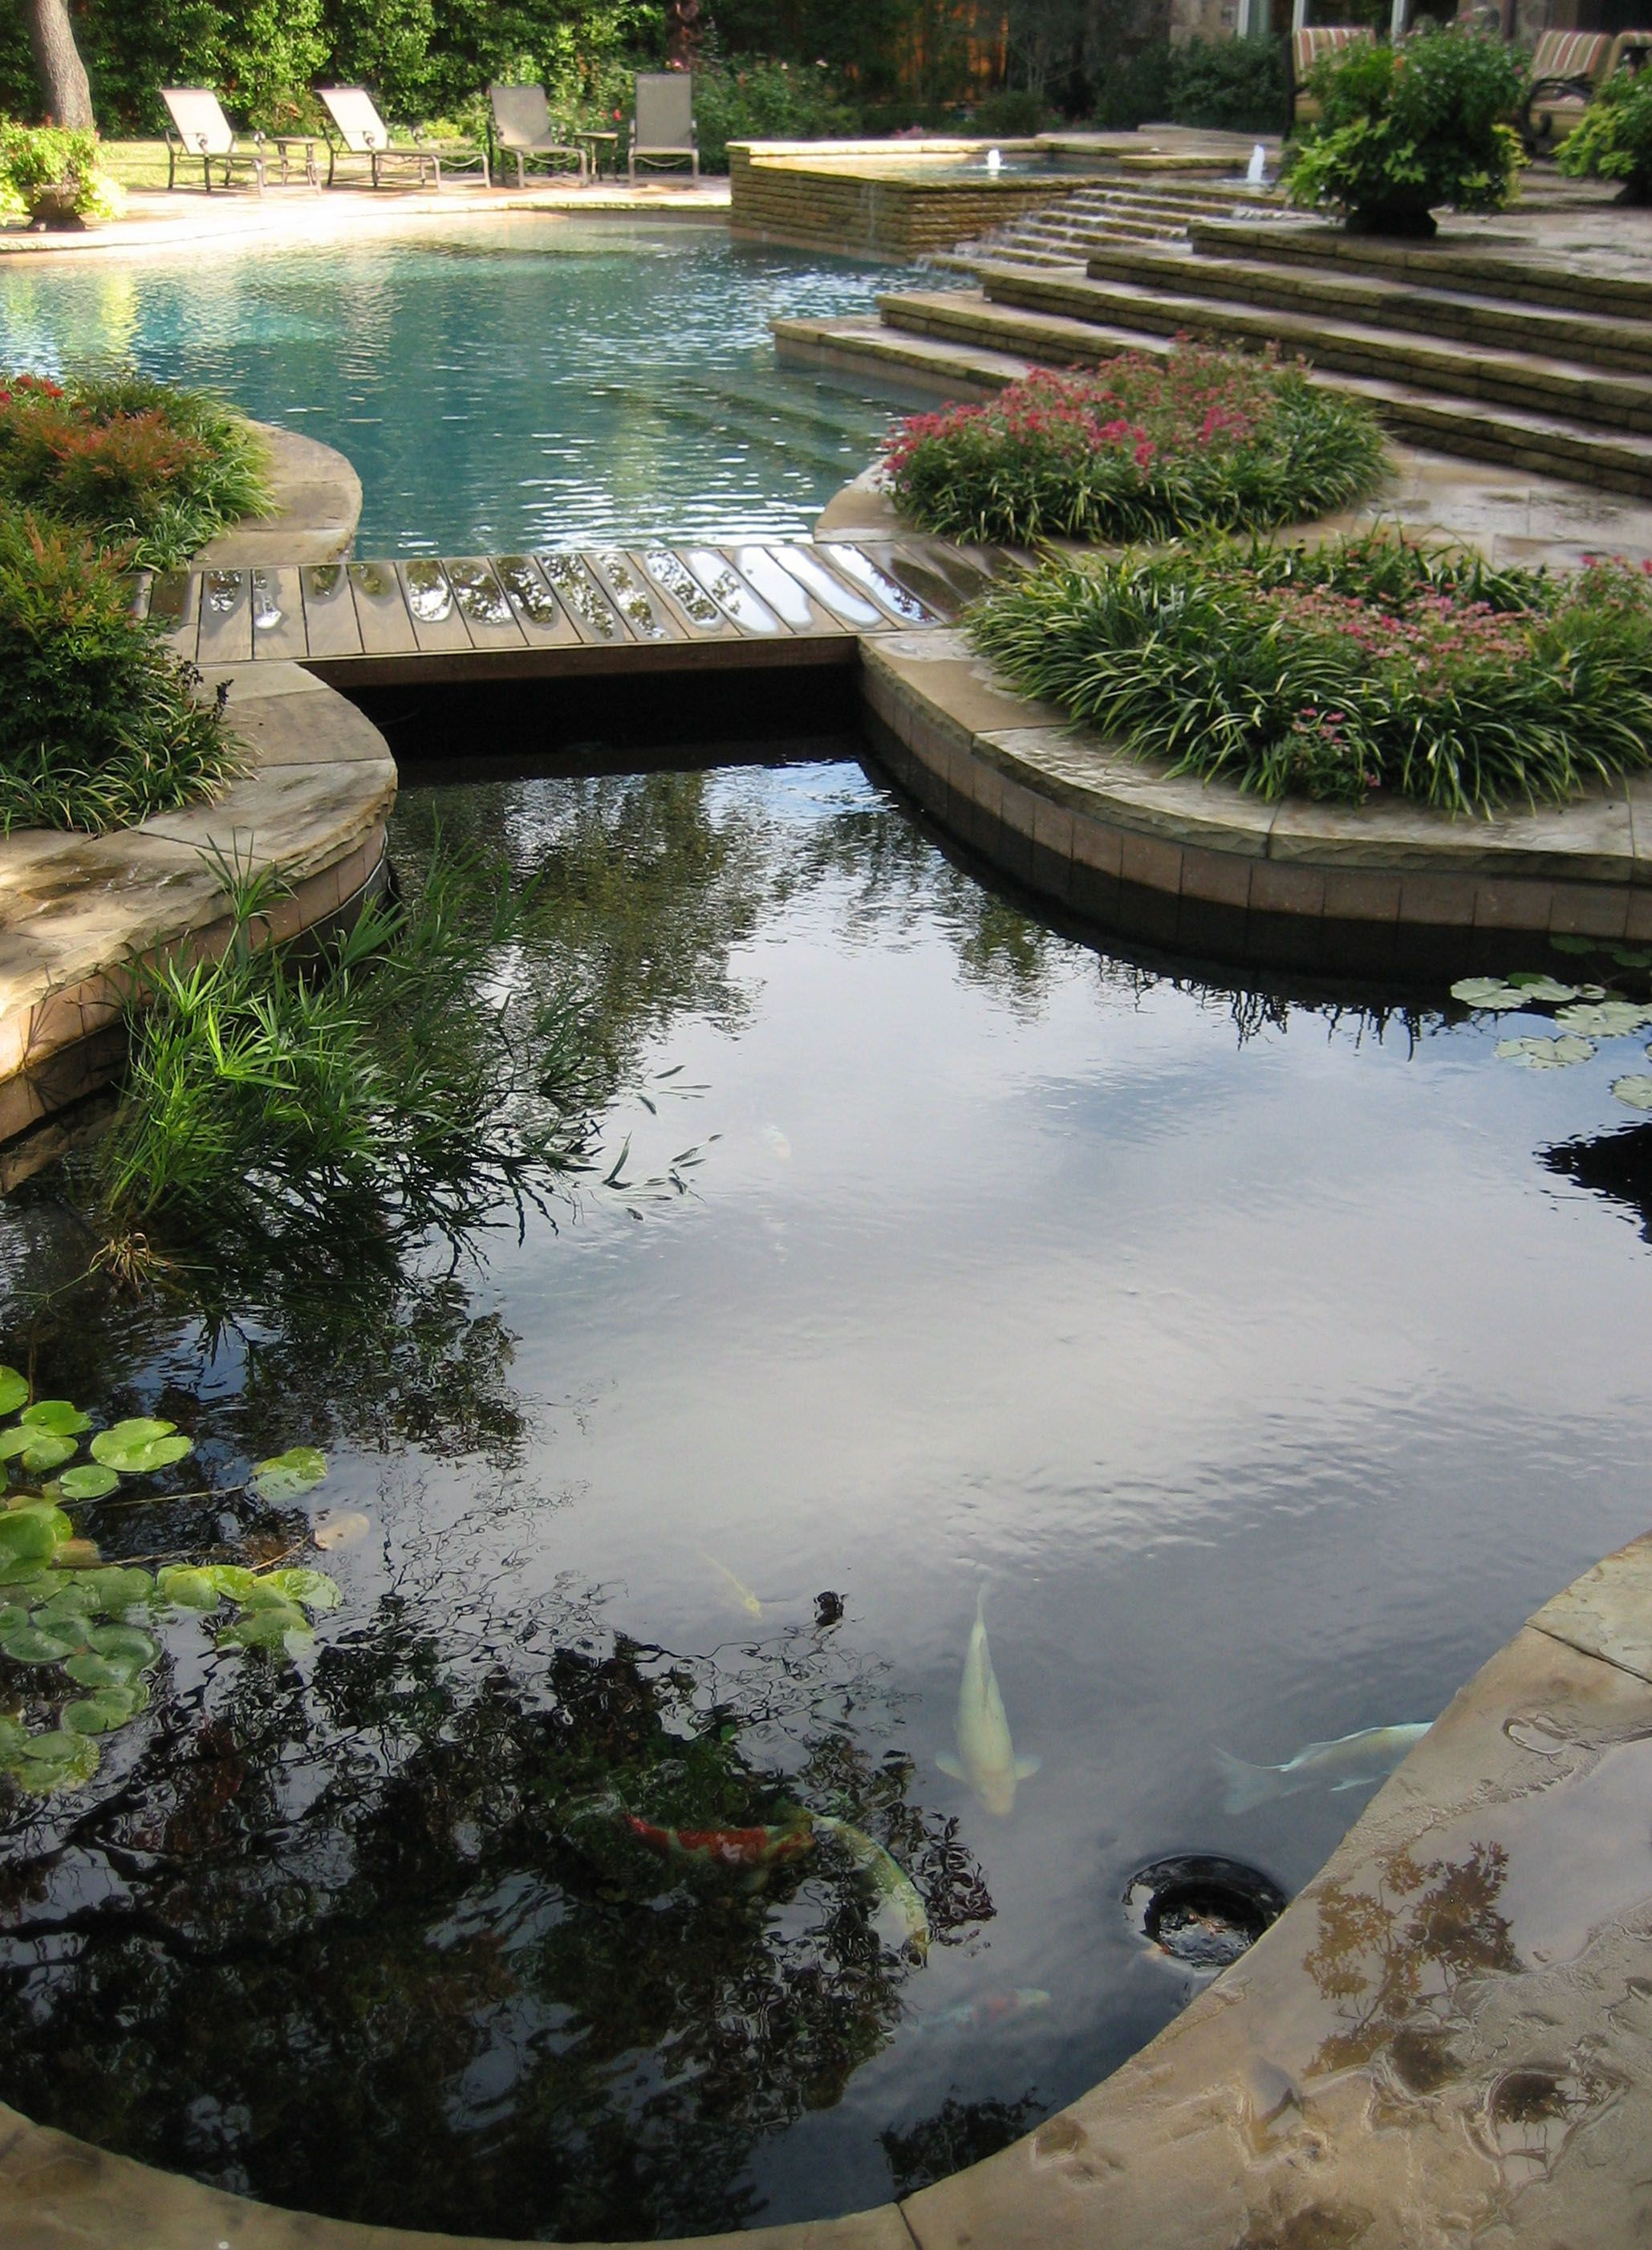 Koi pond and pool design with hidden barrier underneath for Koi pool design